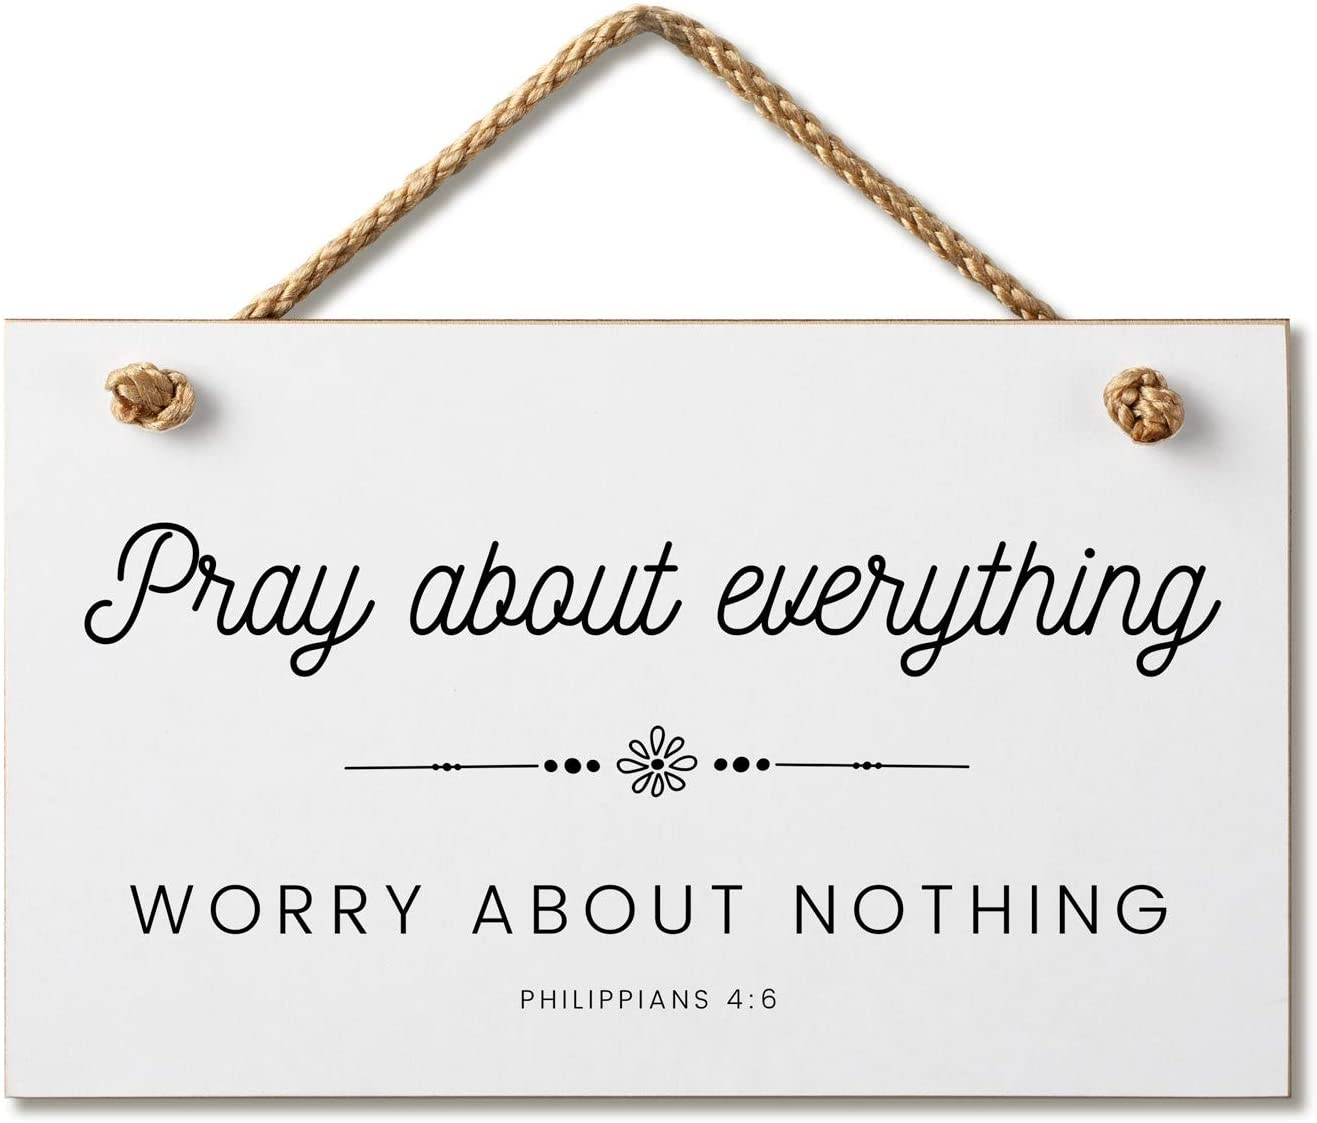 Marvin Gardens Designs Farmhouse Style Bible Verse Wall Decor Wood Sign 9.5 x 5.5 Inch Wood Made in The USA (Pray About Everything (White), 9.5 x 5.5)